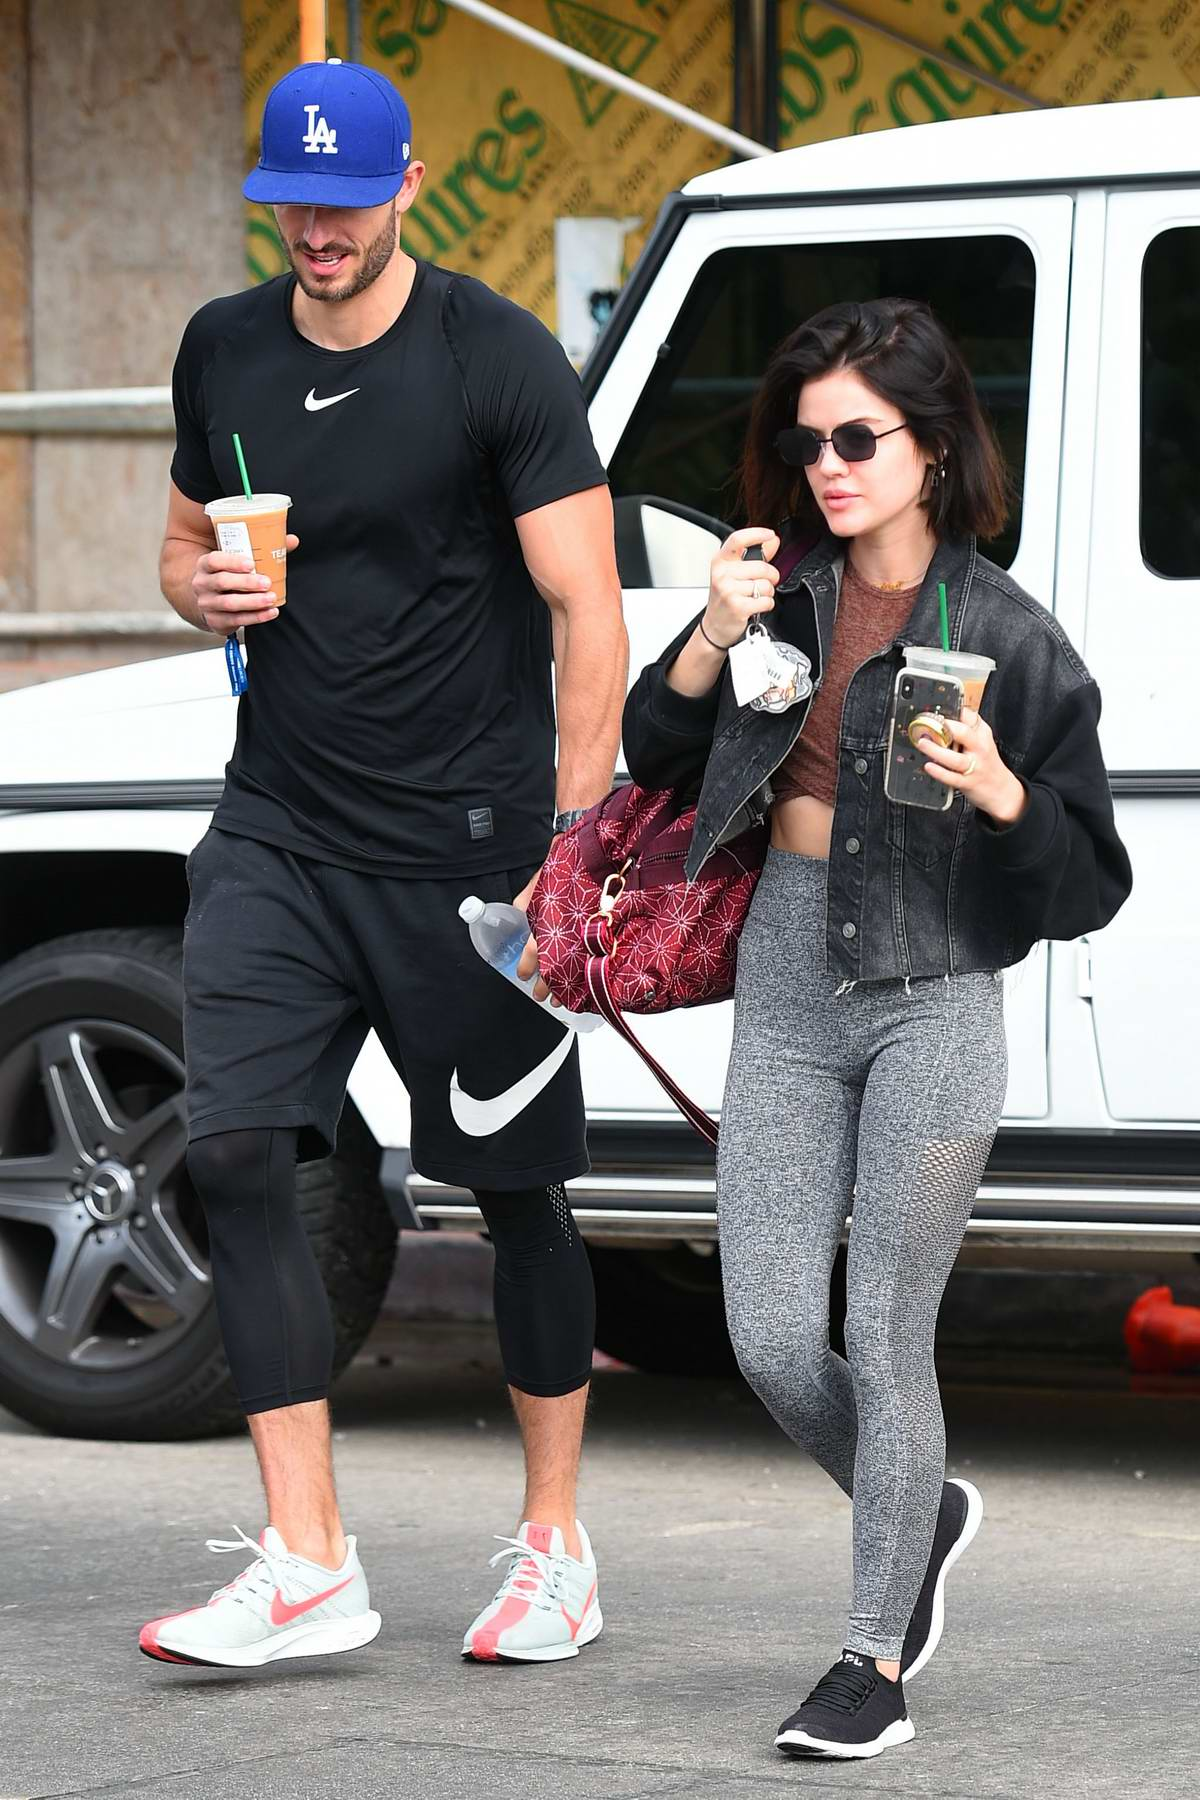 Lucy Hale meets with her trainer at her car as they head to the gym in Los Angeles